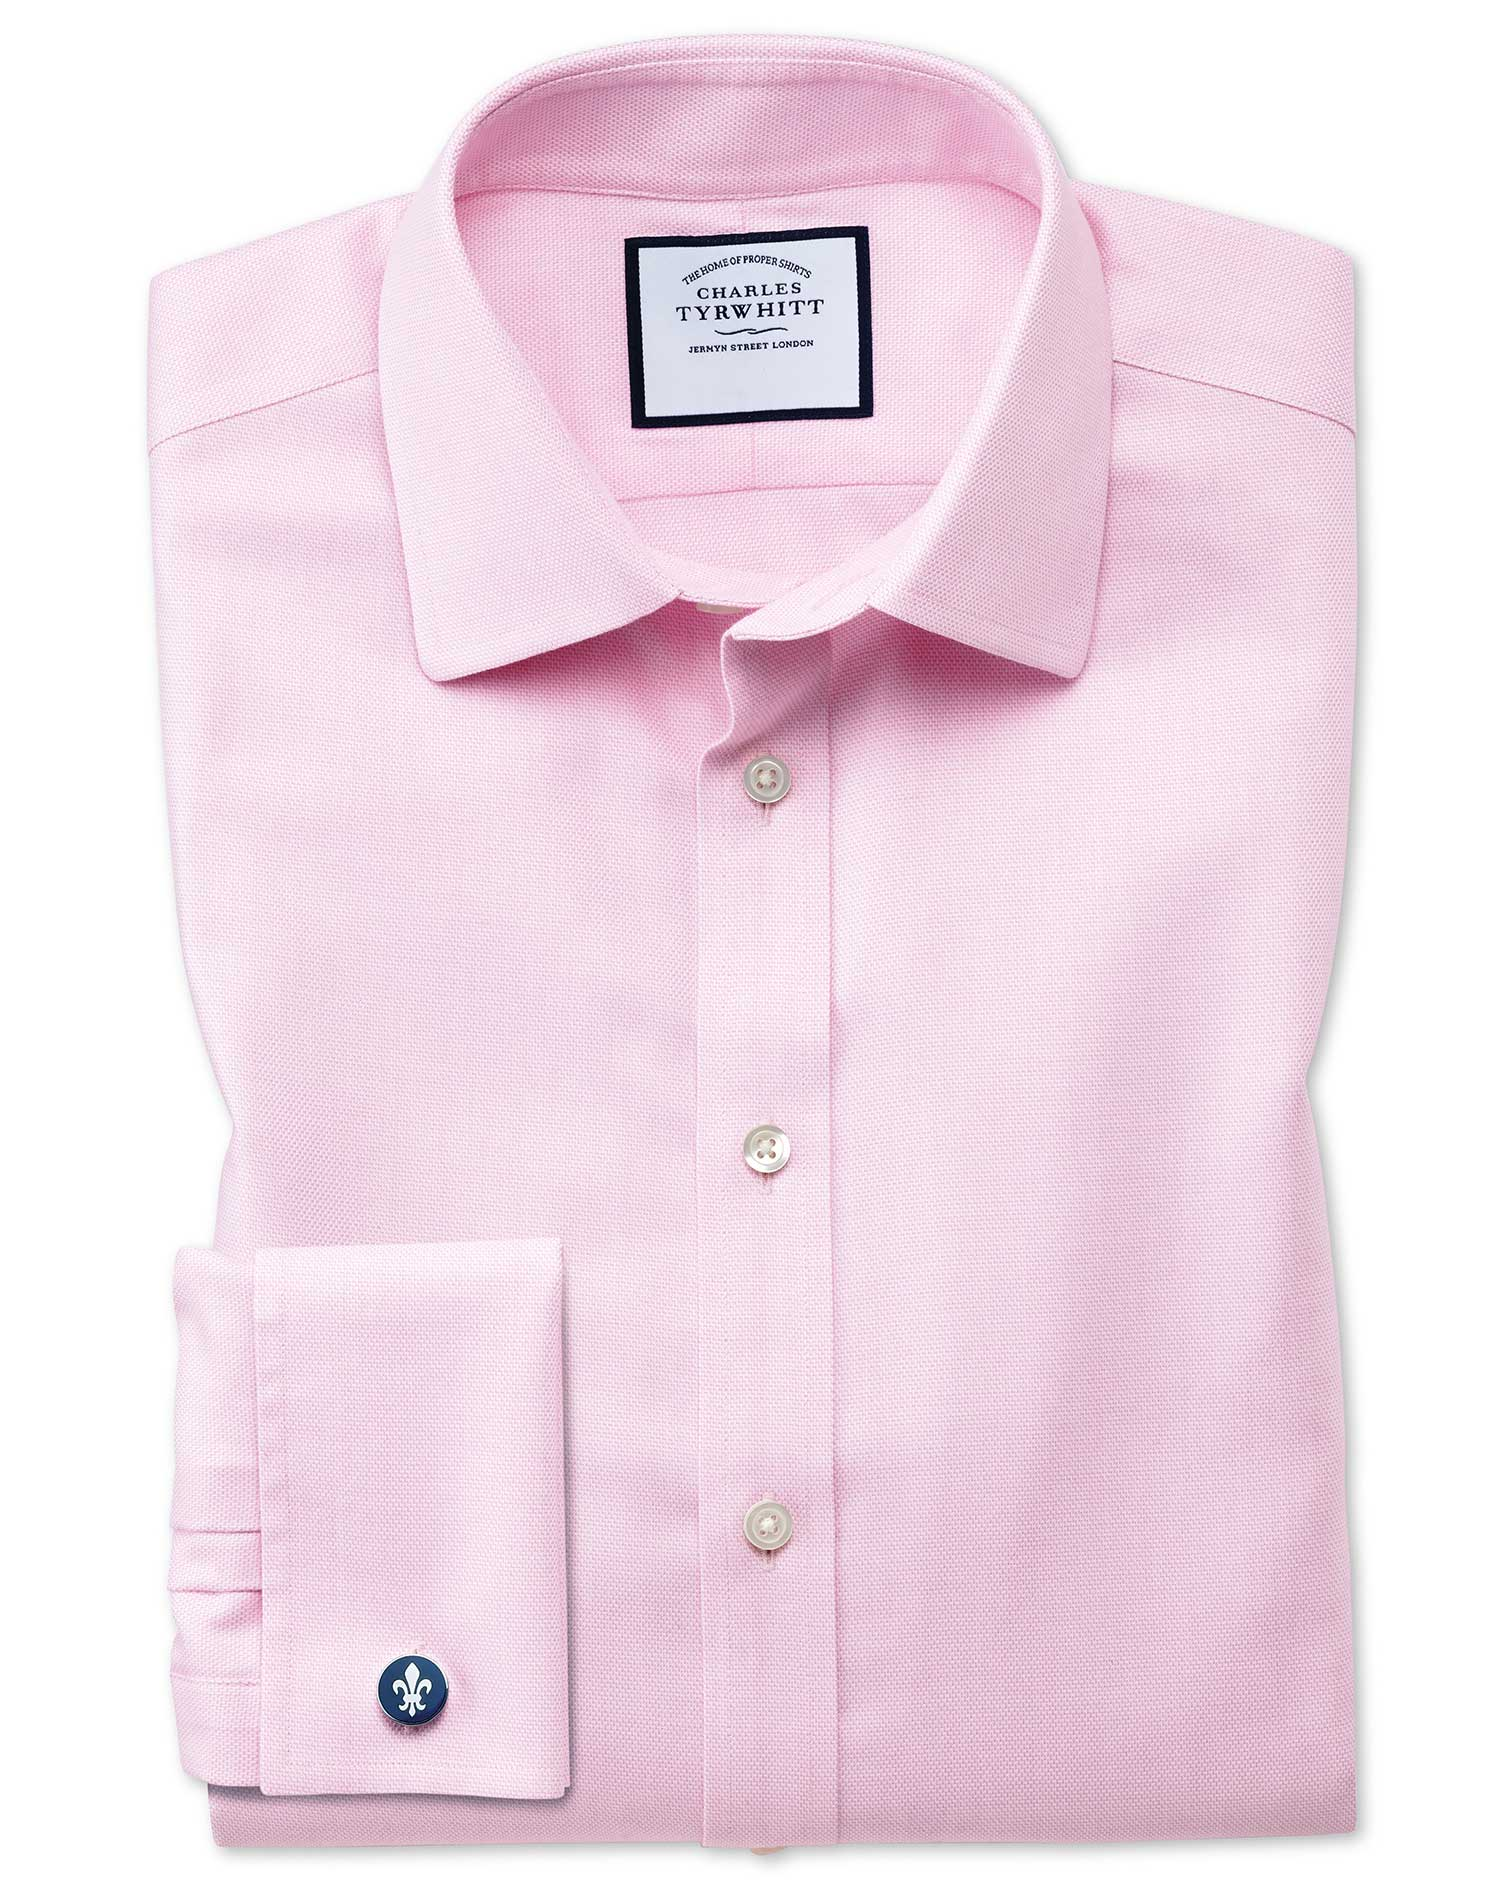 Slim Fit Non-Iron Step Weave Pink Cotton Formal Shirt Double Cuff Size 15.5/32 by Charles Tyrwhitt